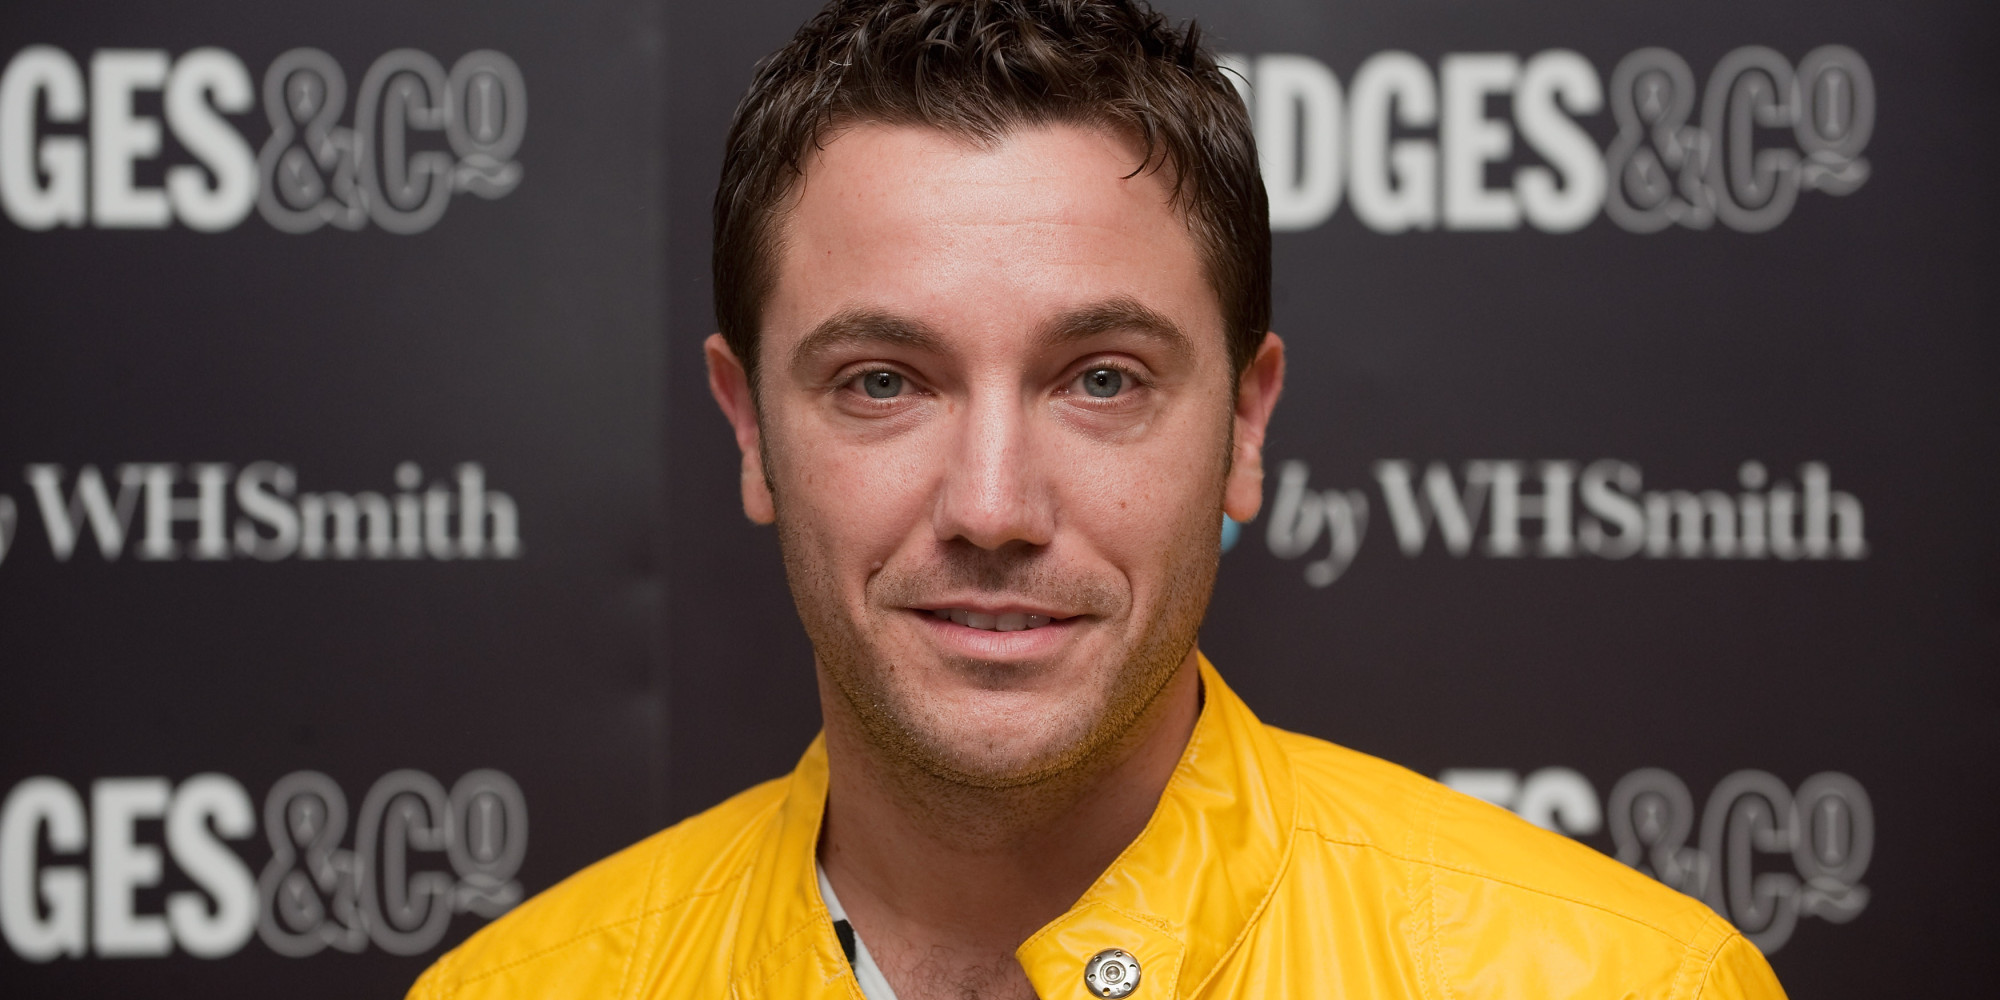 gino d'acampo - photo #35